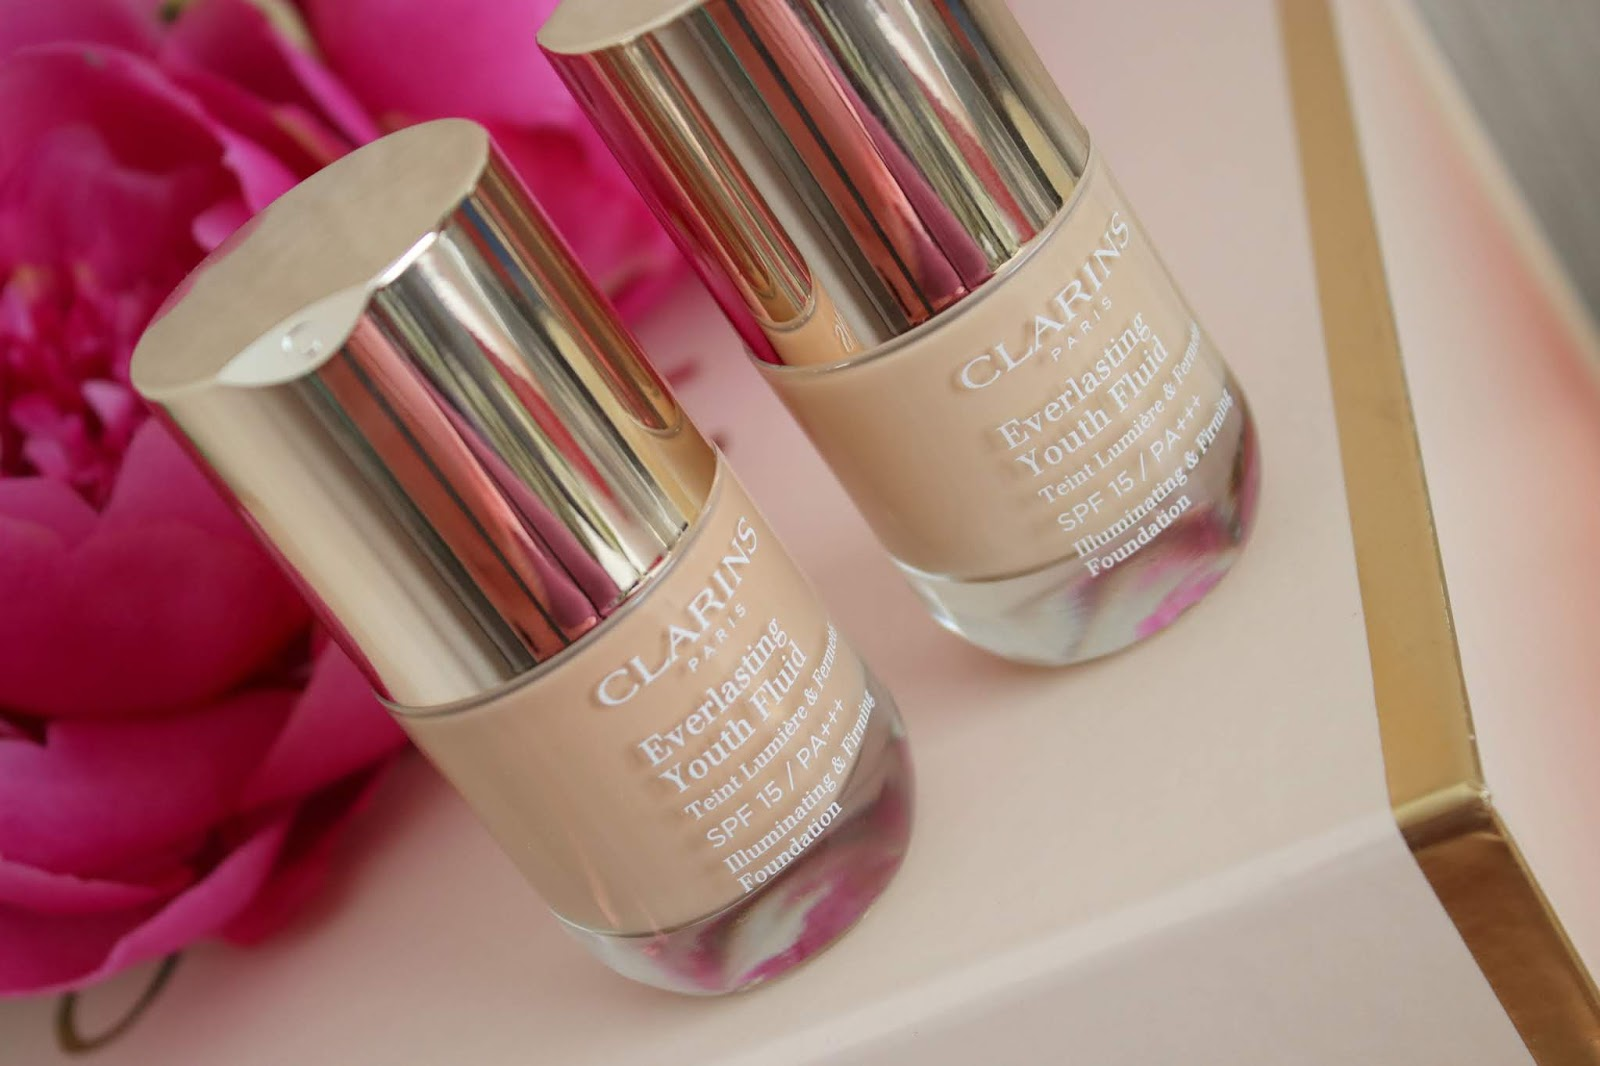 Clarins Everlasting Youth Fluid review, before & after photos!